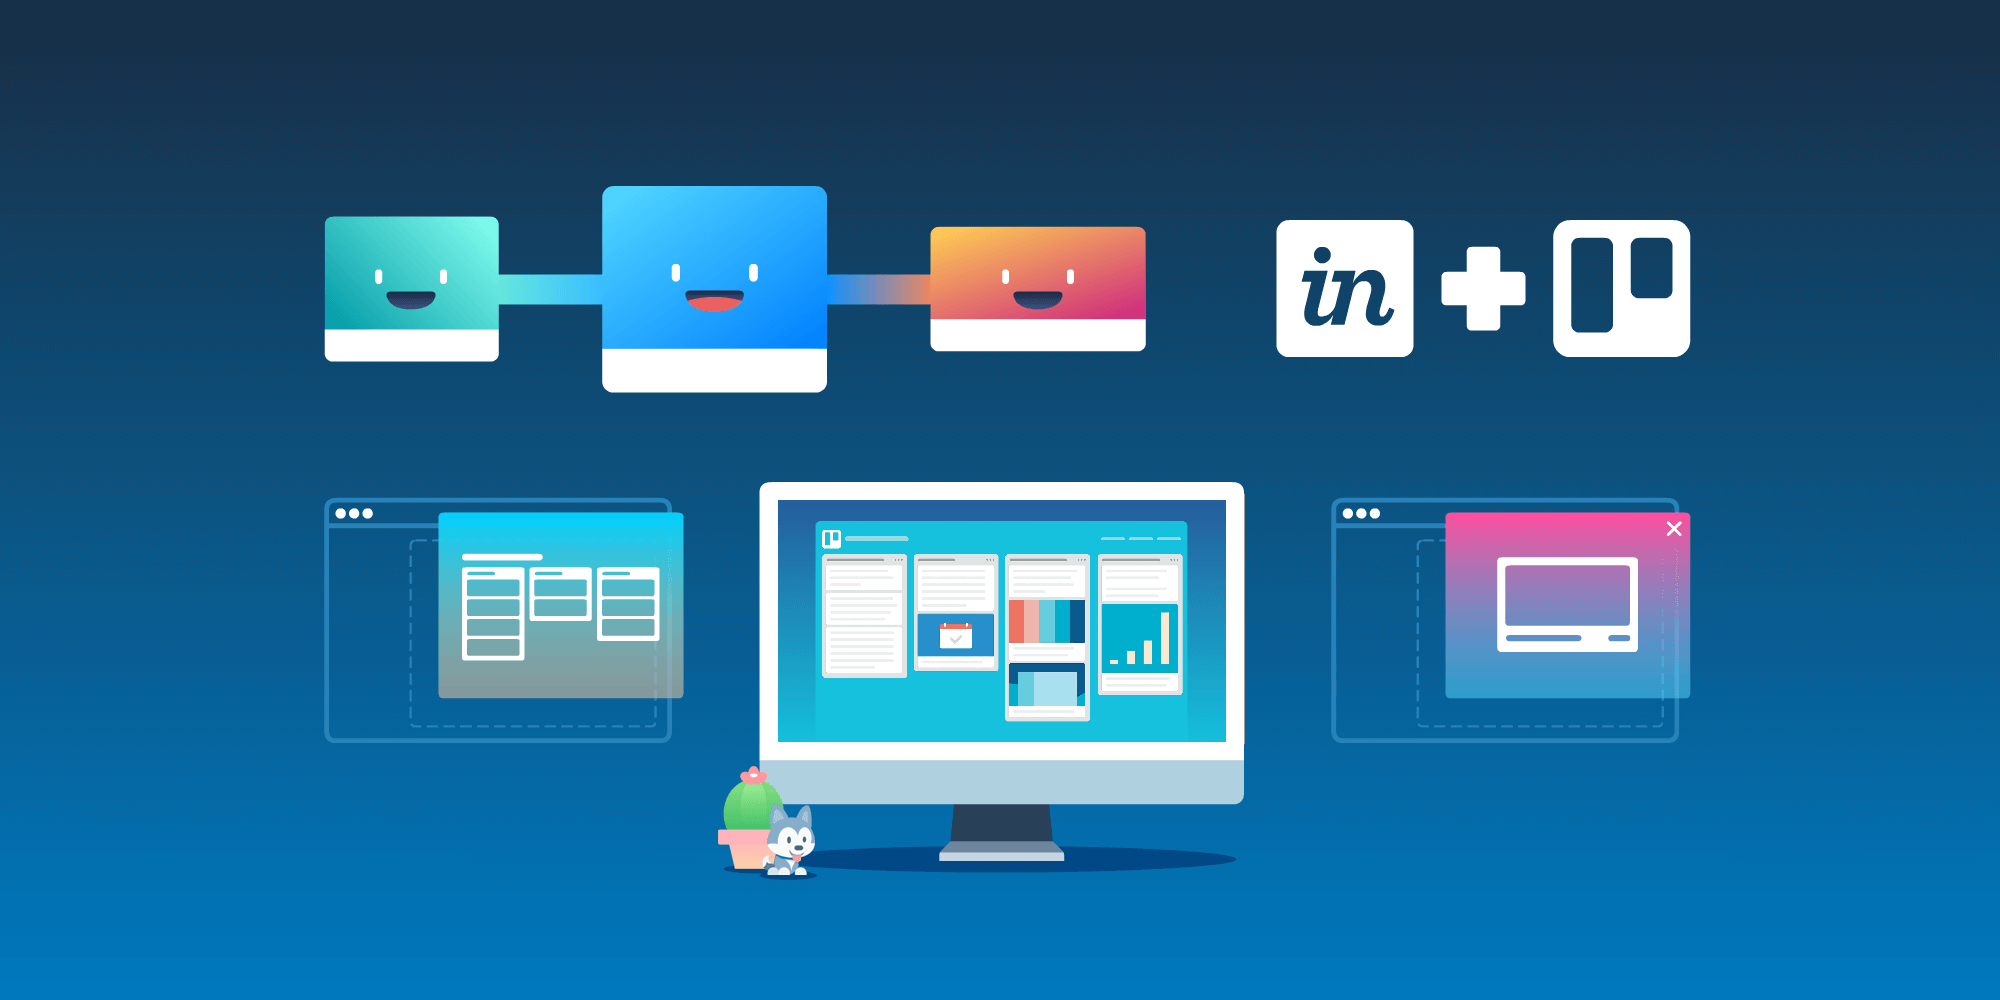 moved to published using trello as an editorial calendar 25 million celebrate with 4 new top requested trello features